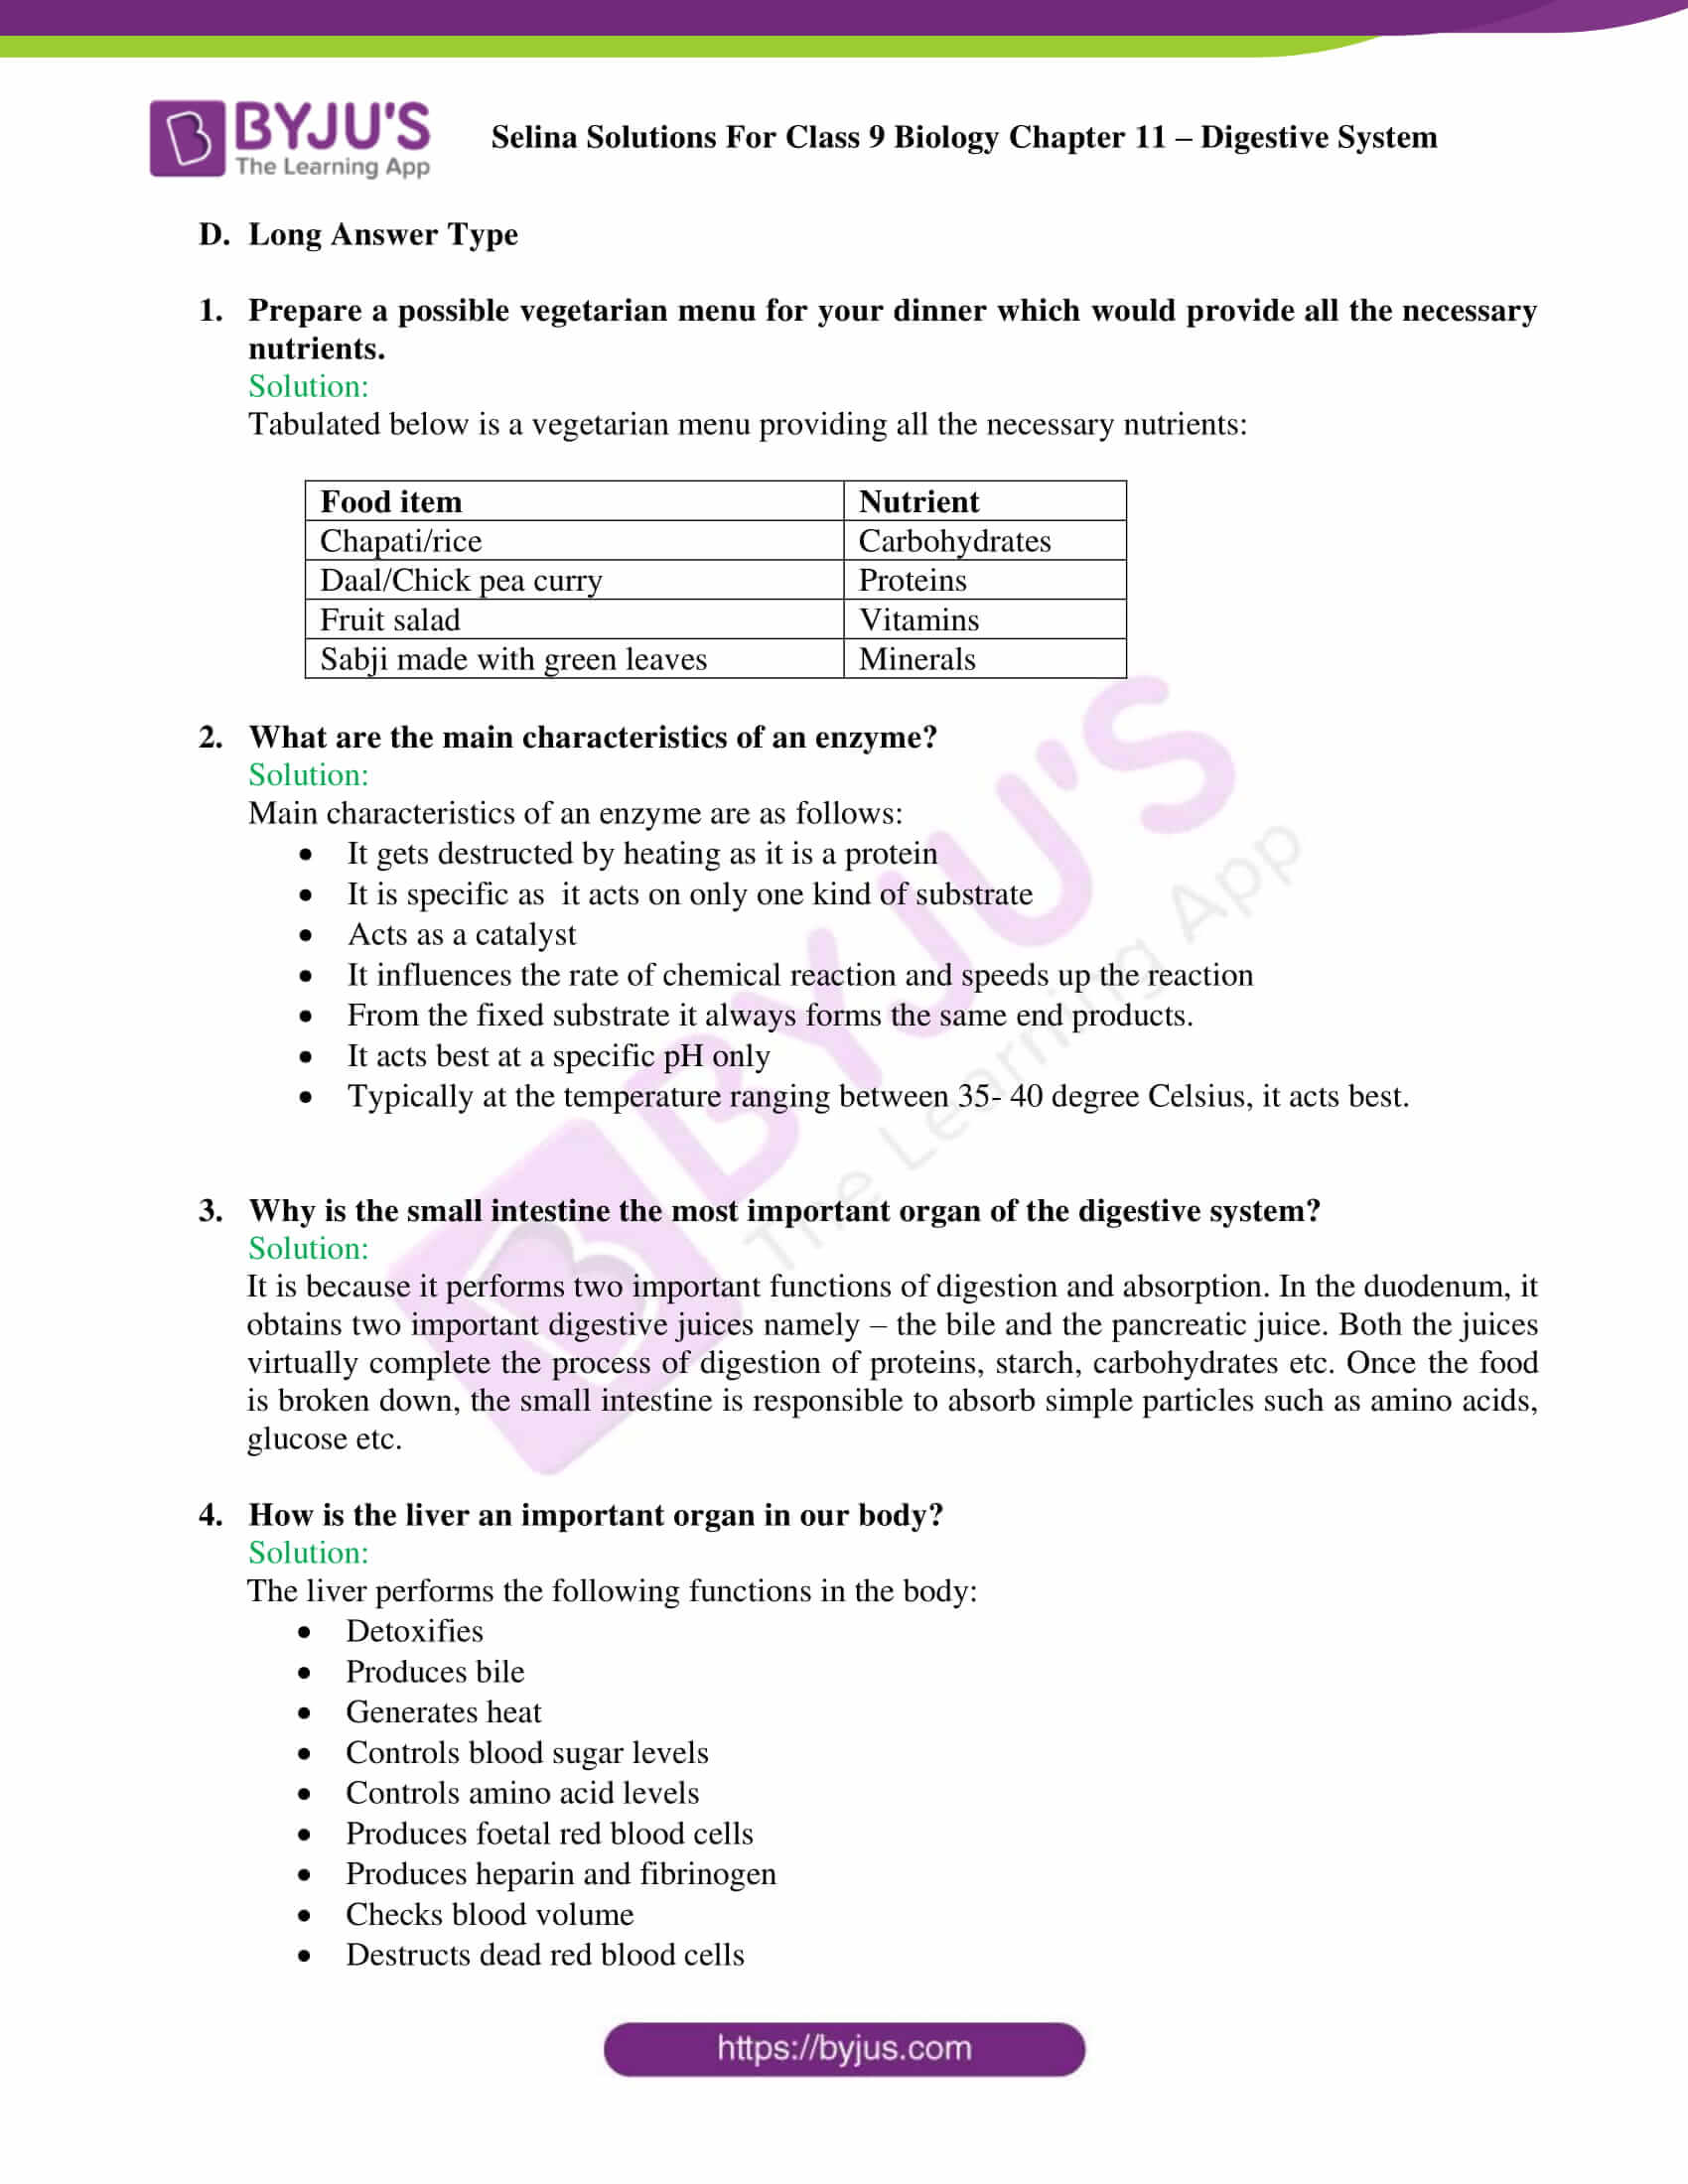 Selina Concise Biology Class 9 Chapter 11 Solutions – Digestive System